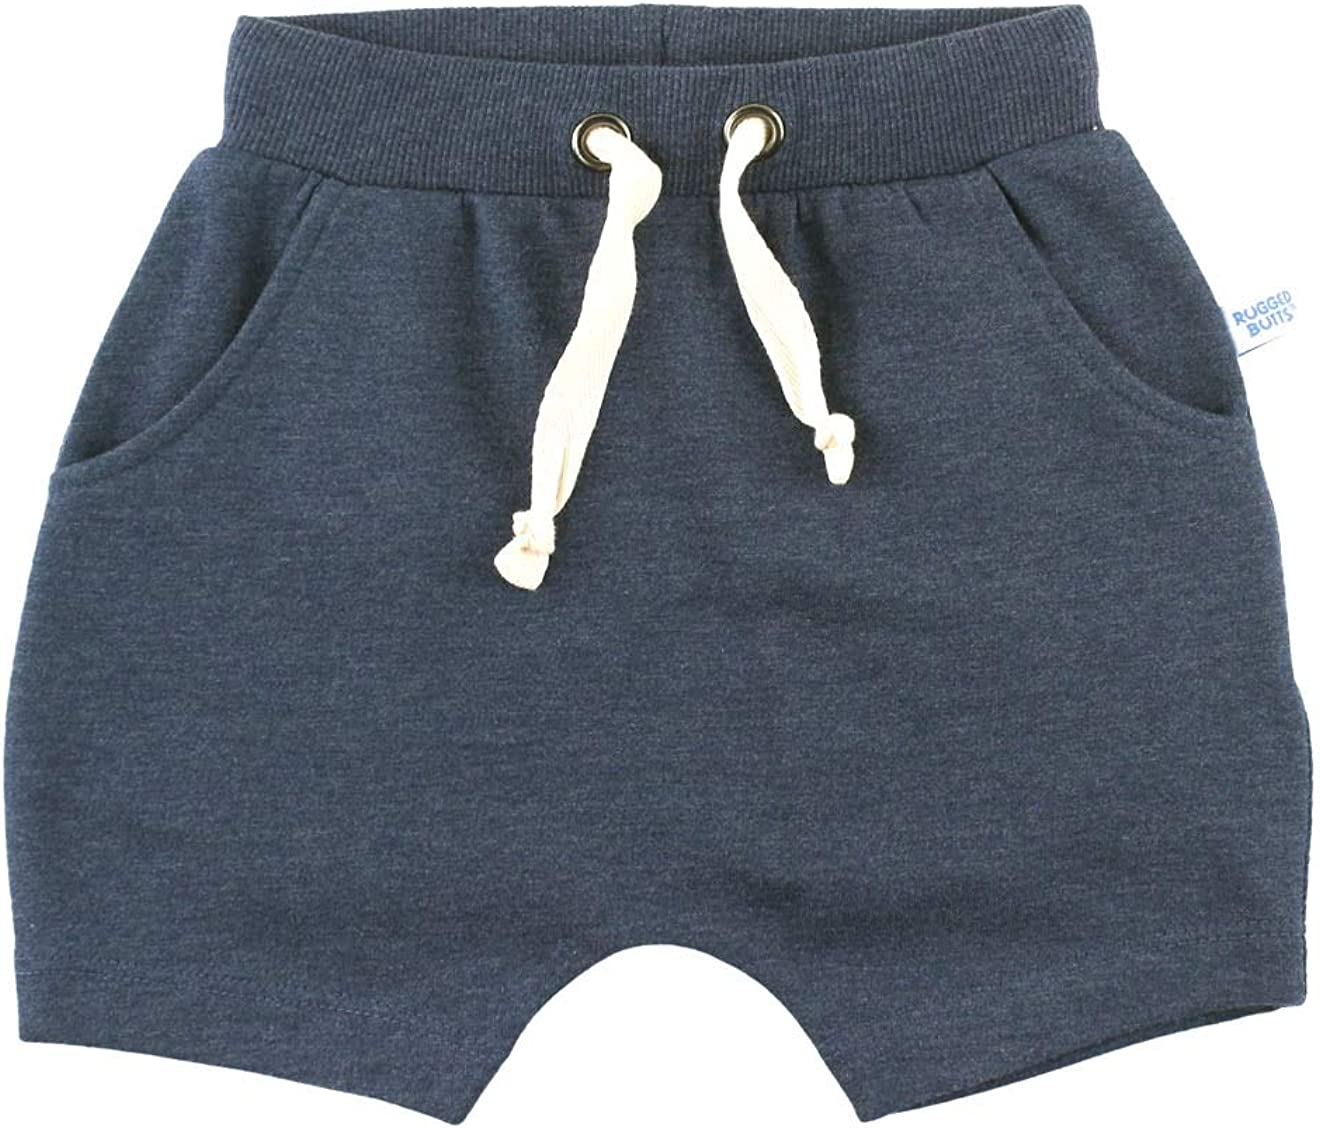 RUGGEDBUTTS Baby Toddler Boys Knit Pull-On Translated Shorts Dr Sale item Jogger with